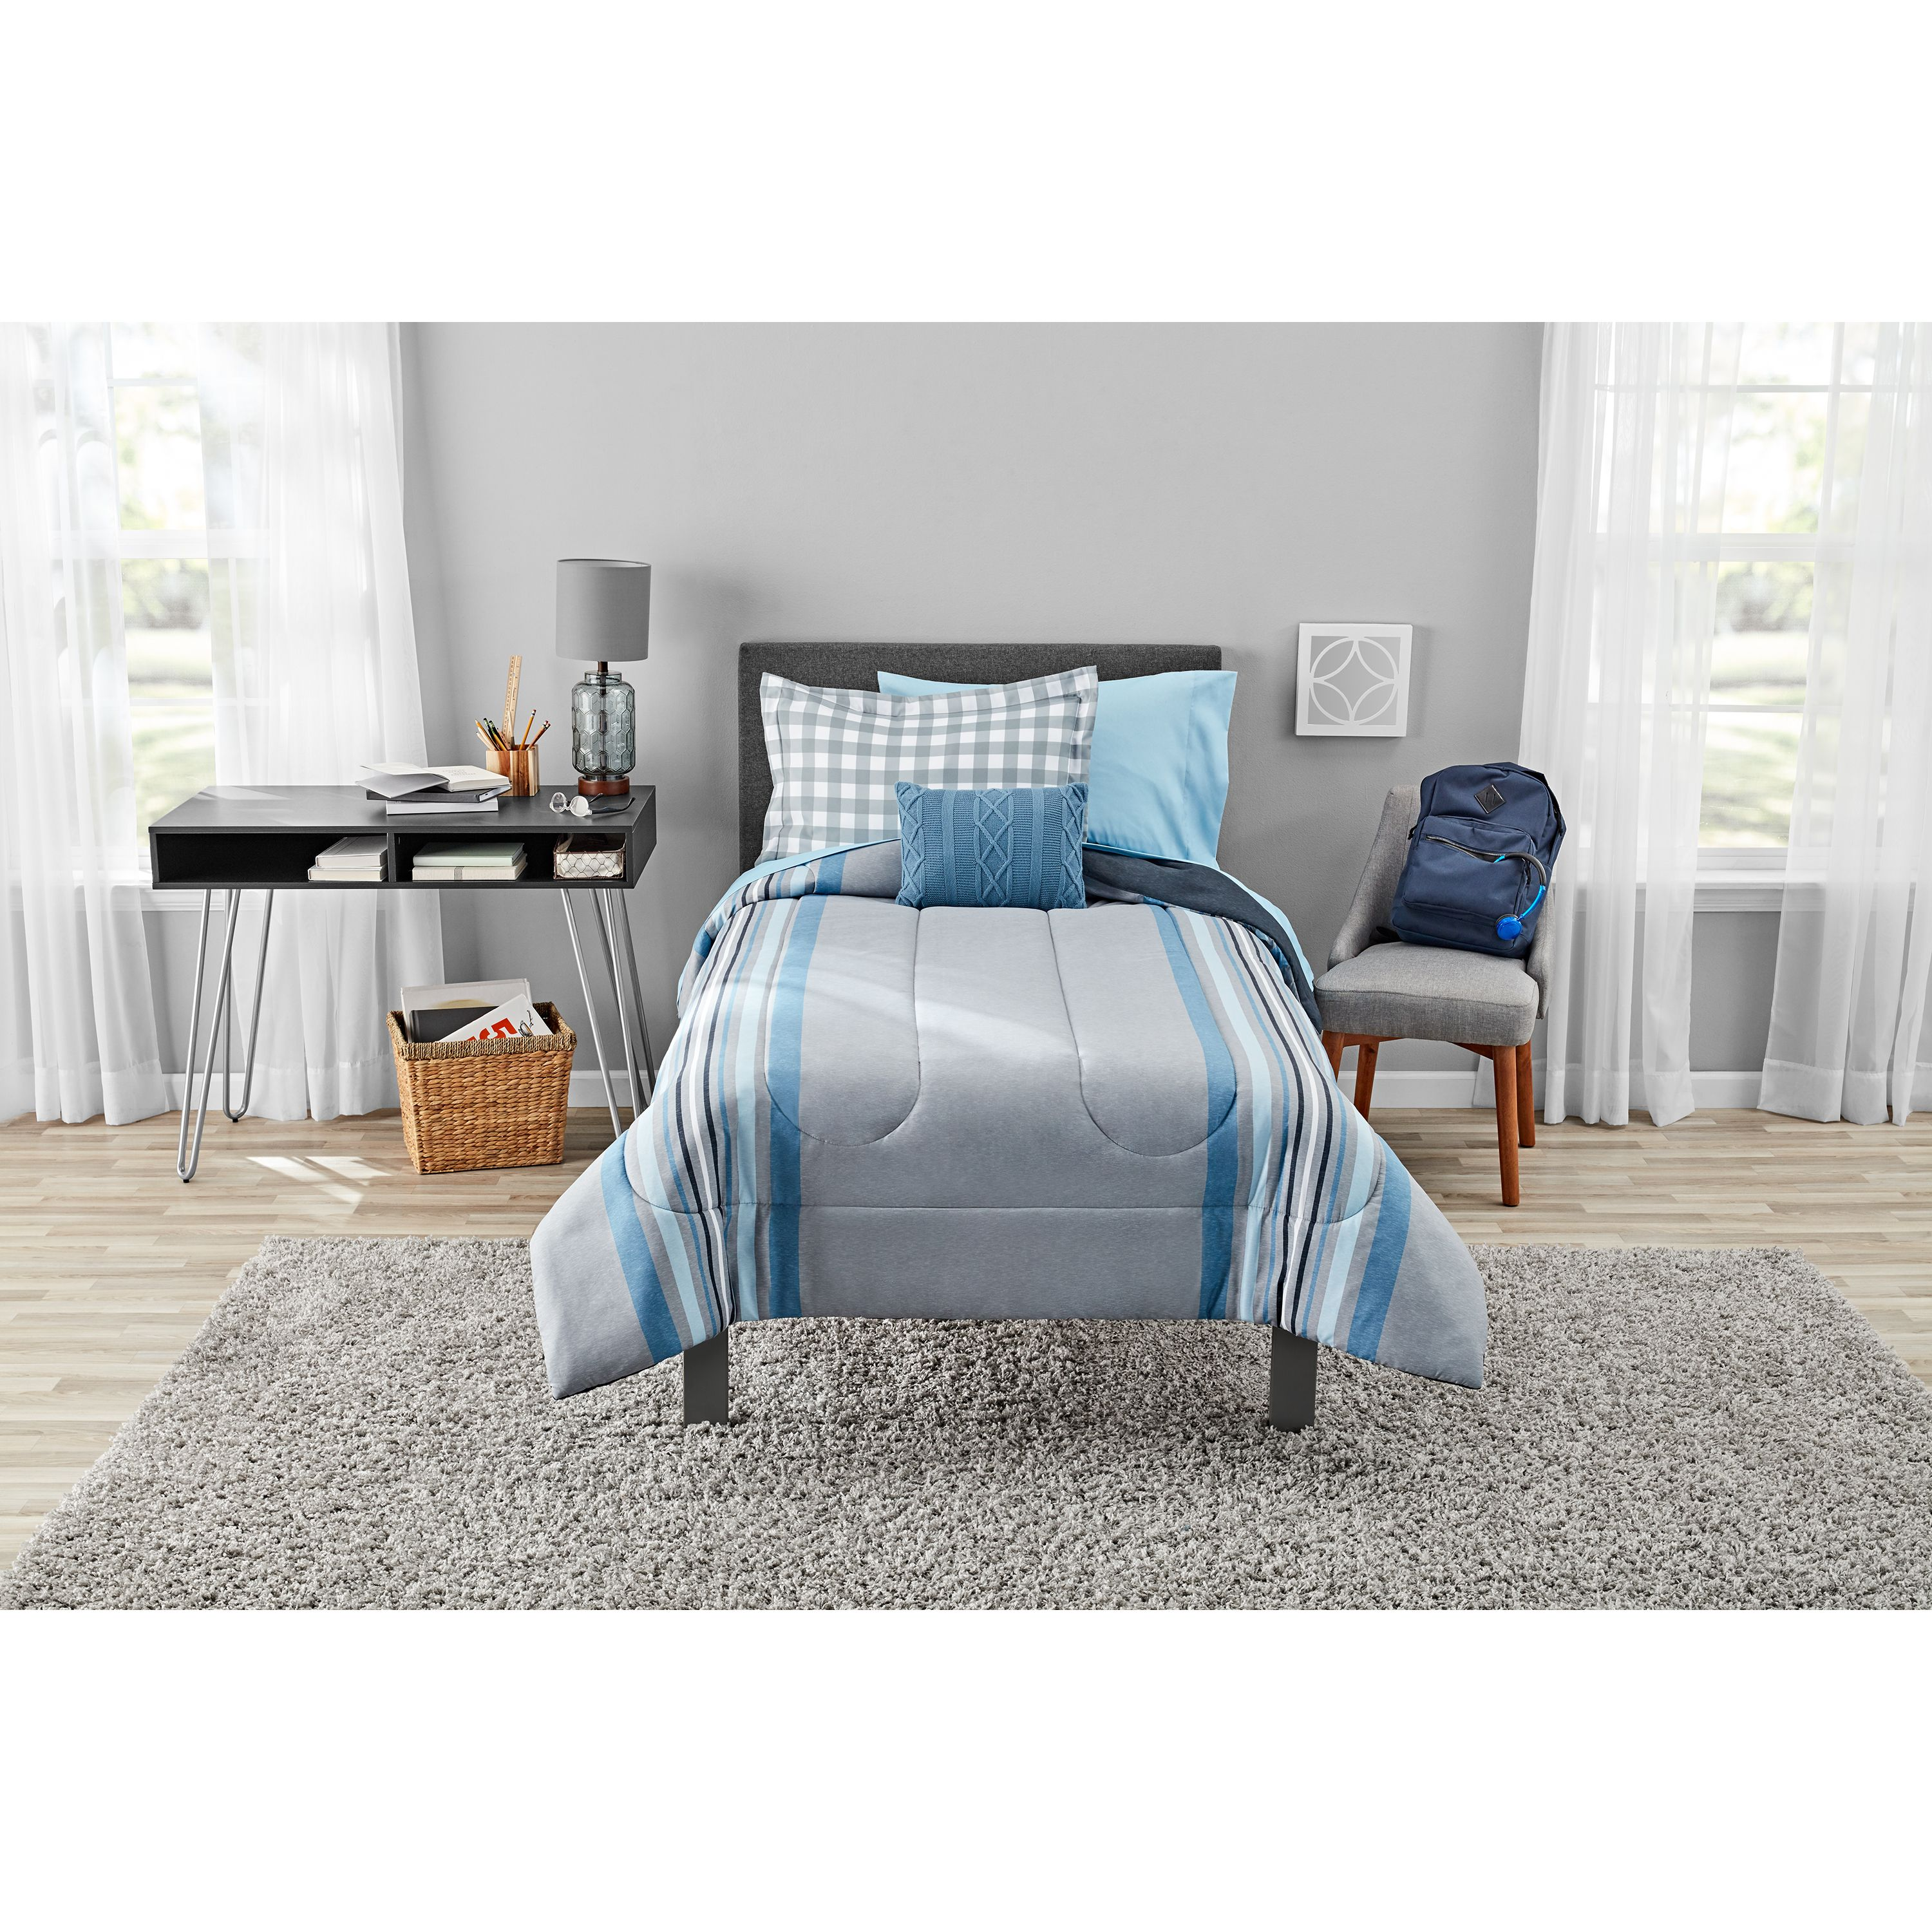 Mainstays Farmhouse Gray Stripe Bed in a Bag Bedding Set by Beco Industries